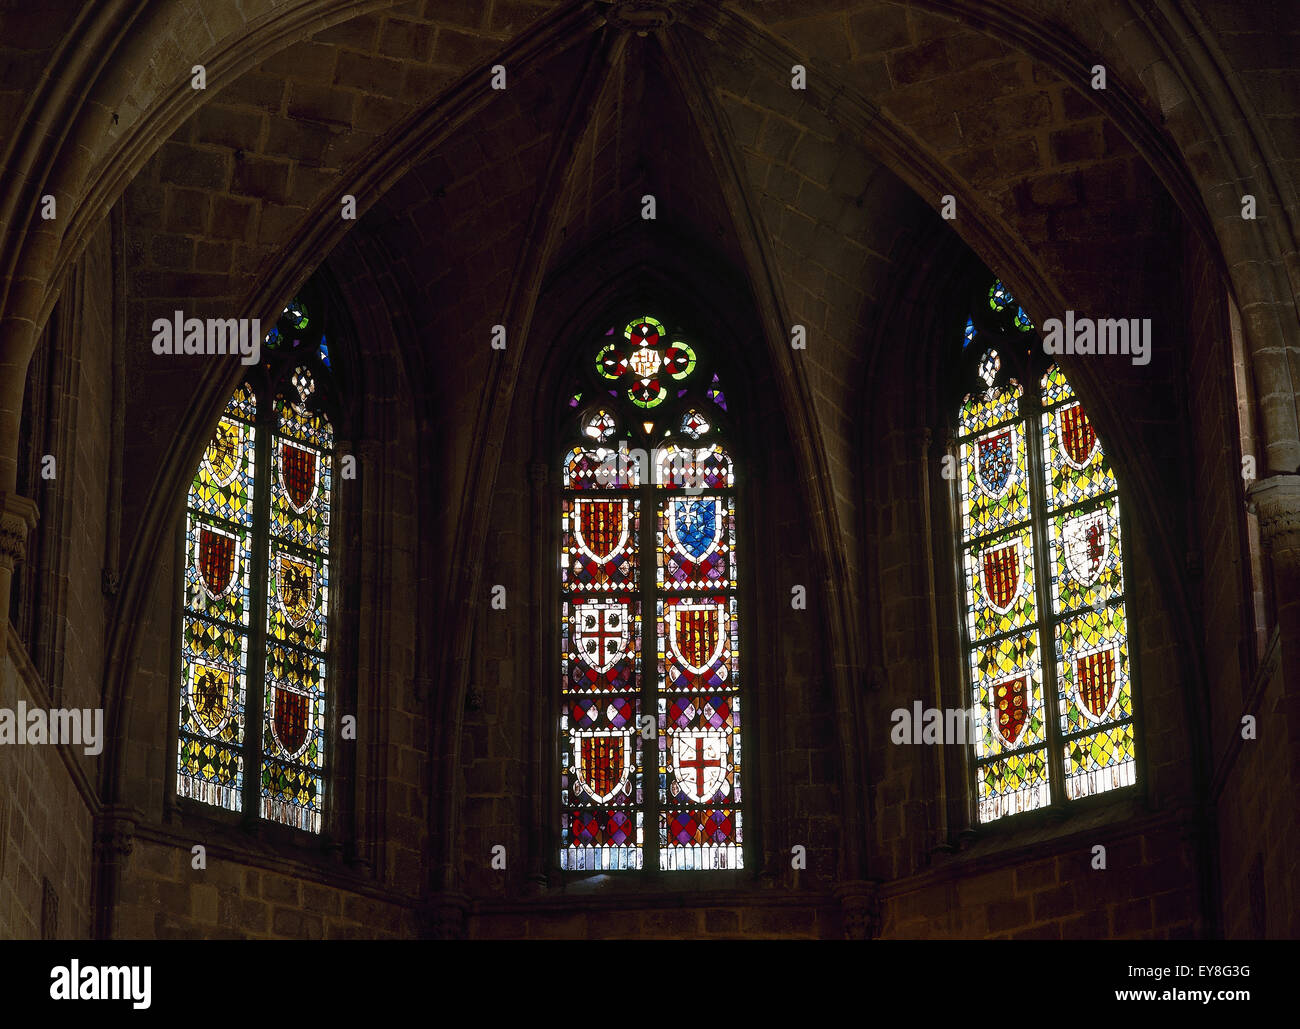 Spain. Barcelona. Chapel of Santa Agata. 14th century. Stained glass. Gothic Quarter. - Stock Image